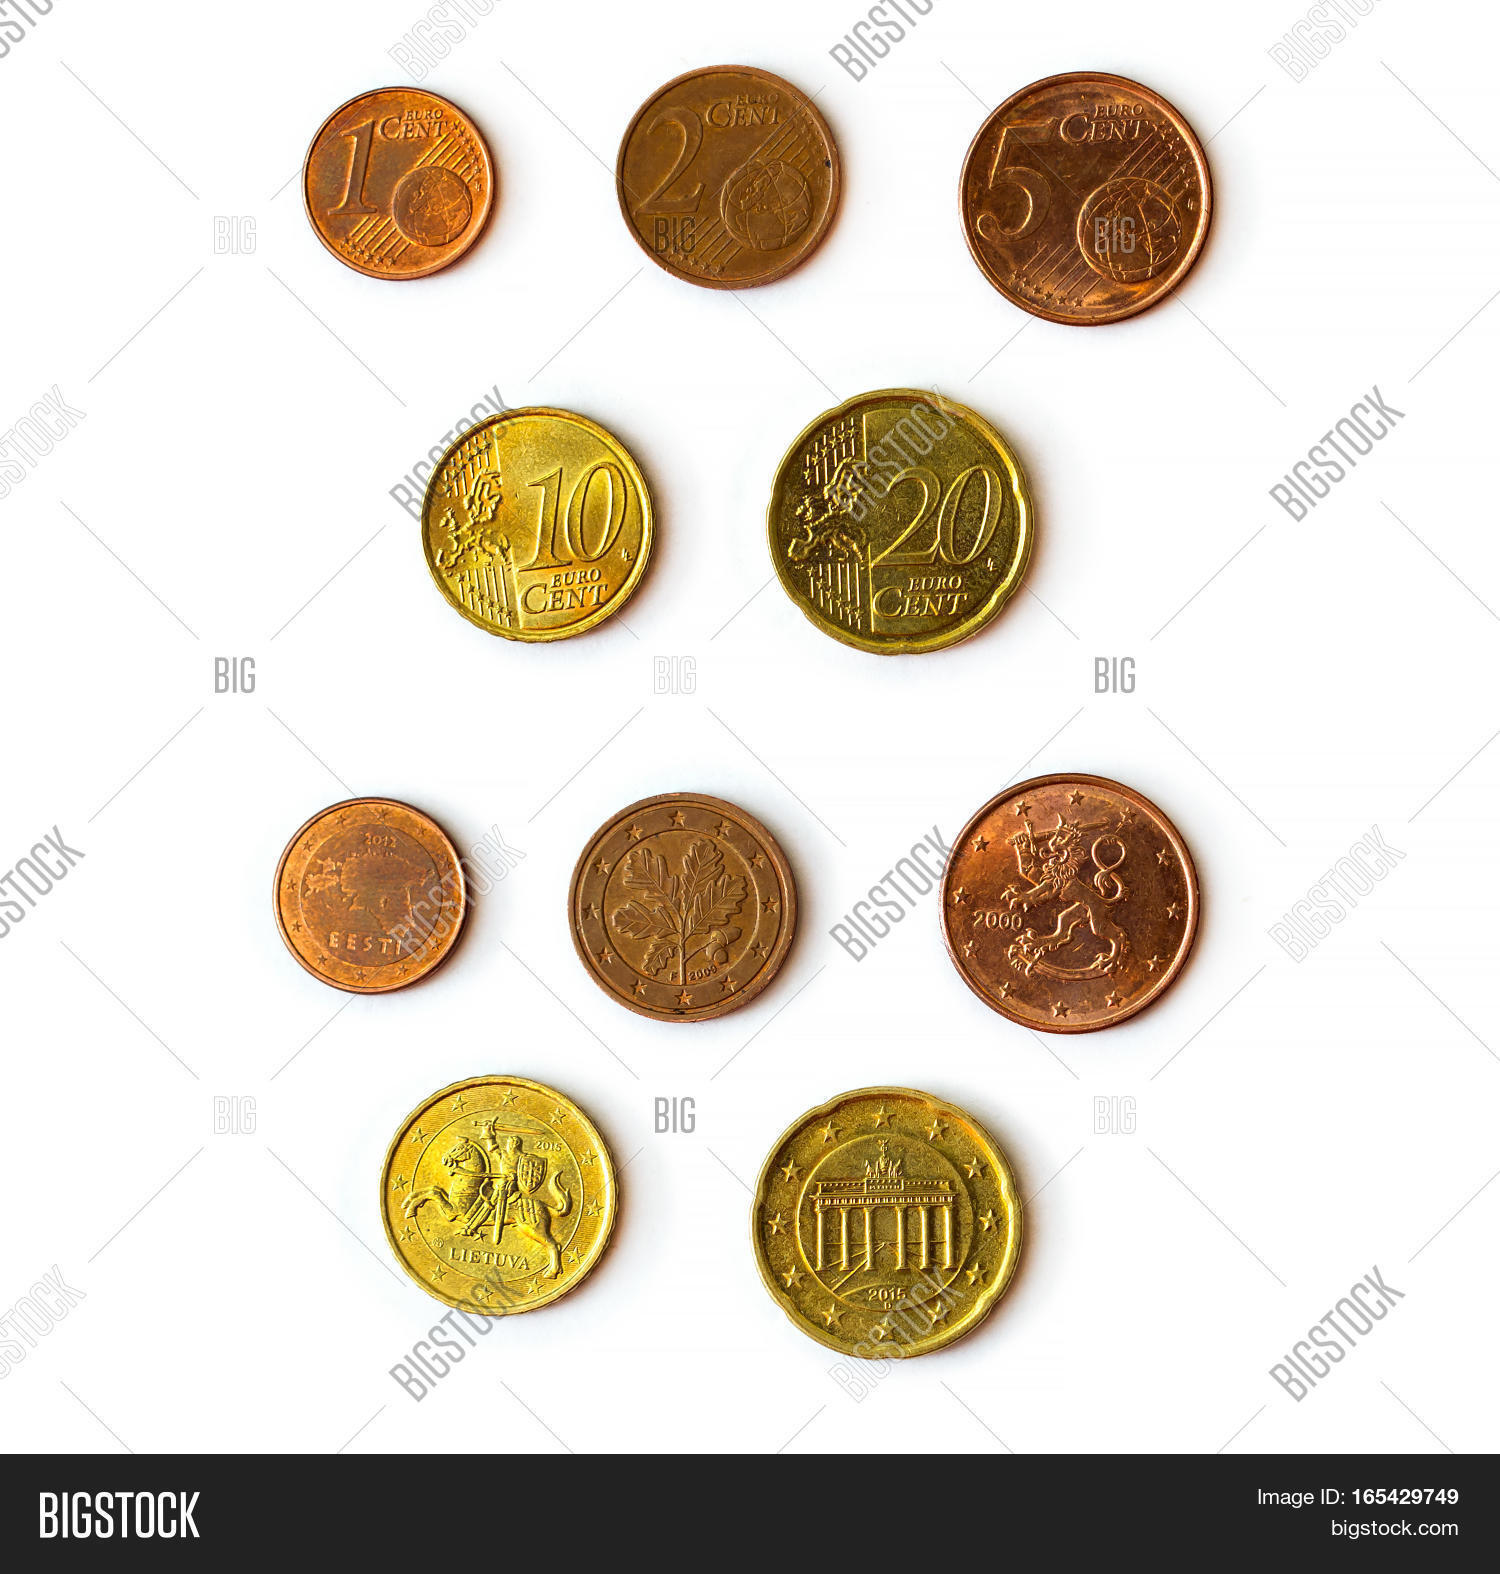 Euro Cent Coins Set Image Photo Free Trial Bigstock